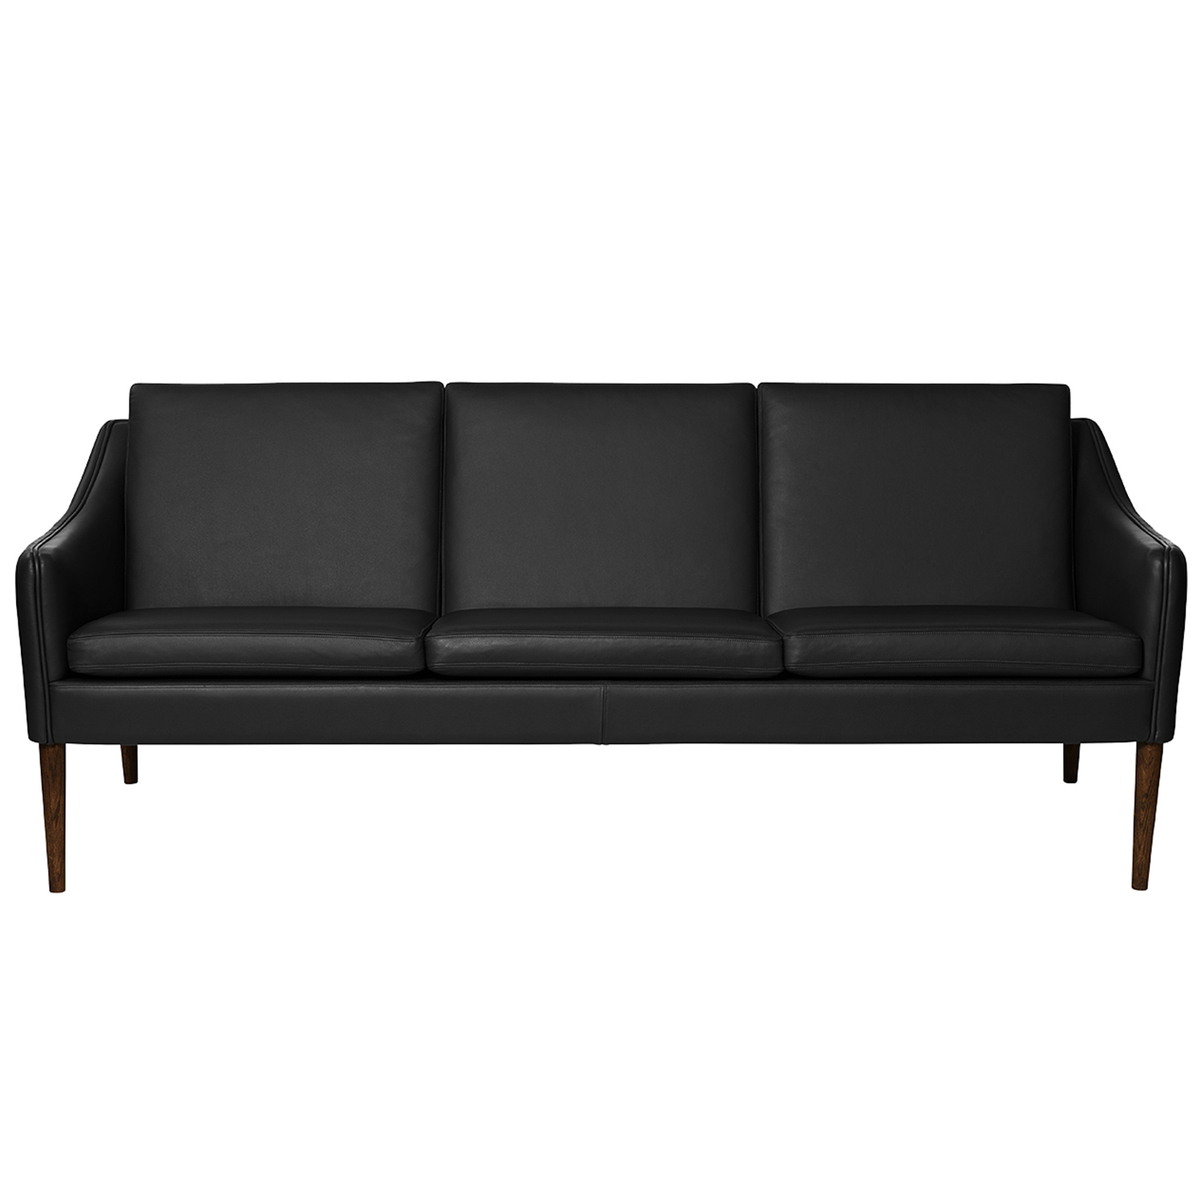 Warm Nordic Mr Olsen Sofa 3 Seater Walnut Black Leather